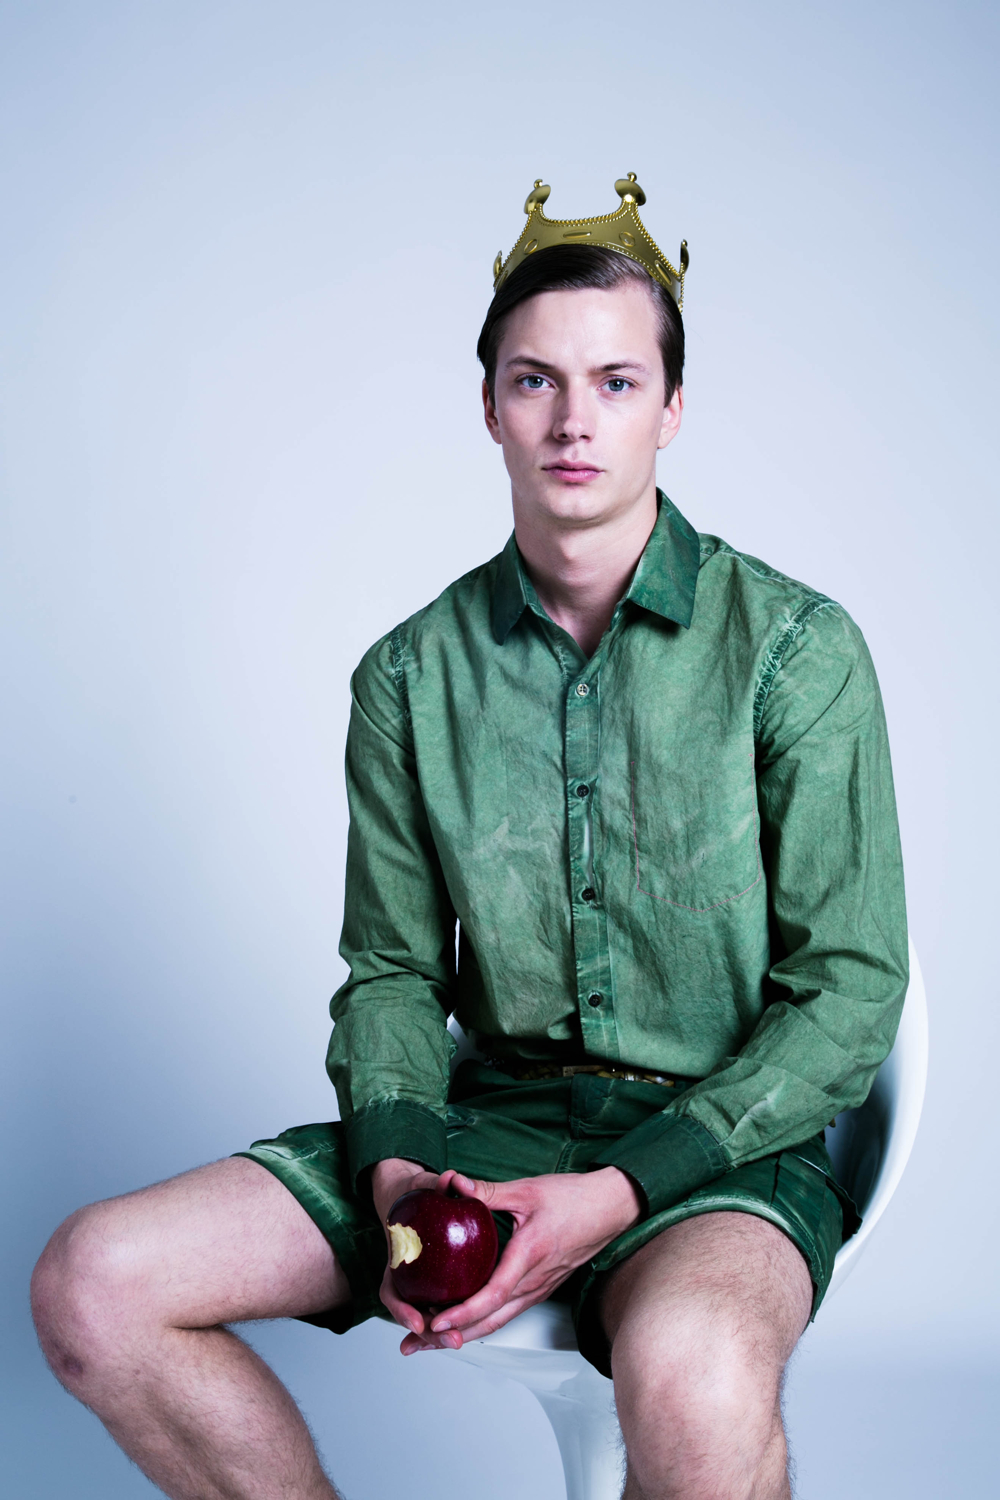 Fashionisto Exclusive: Linus Gustin + Vladimir Averyanov by Melissa Marcello